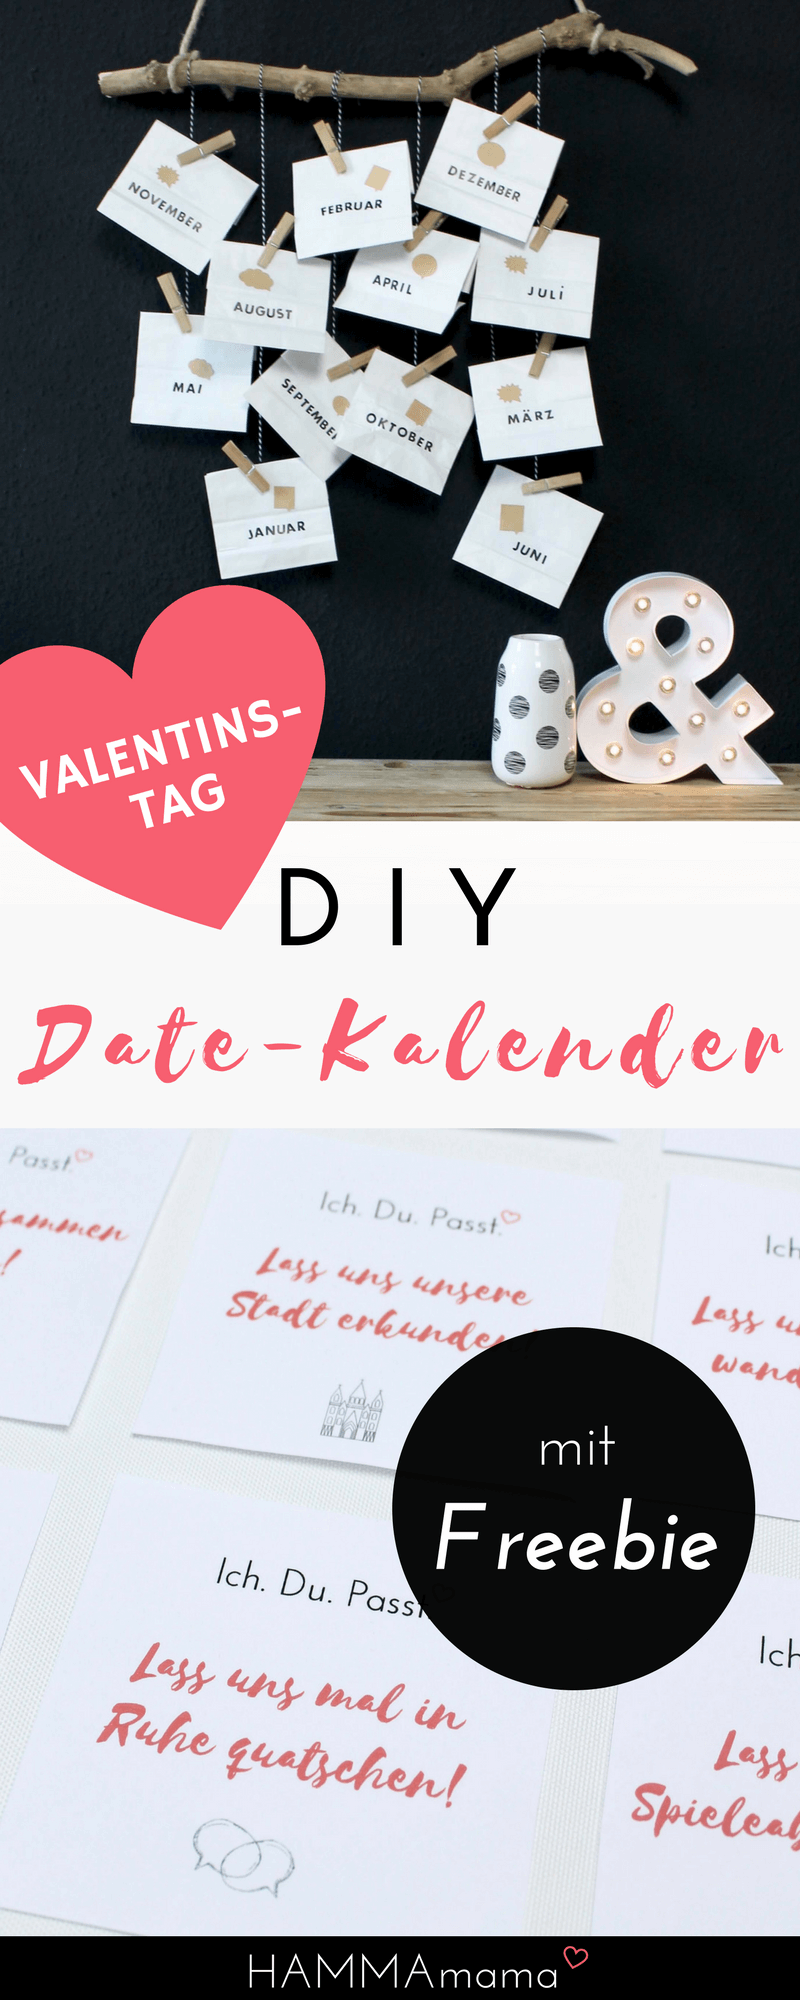 diy zum valentinstag vatertag oder geburtstag mit freebie date kalender selber machen. Black Bedroom Furniture Sets. Home Design Ideas